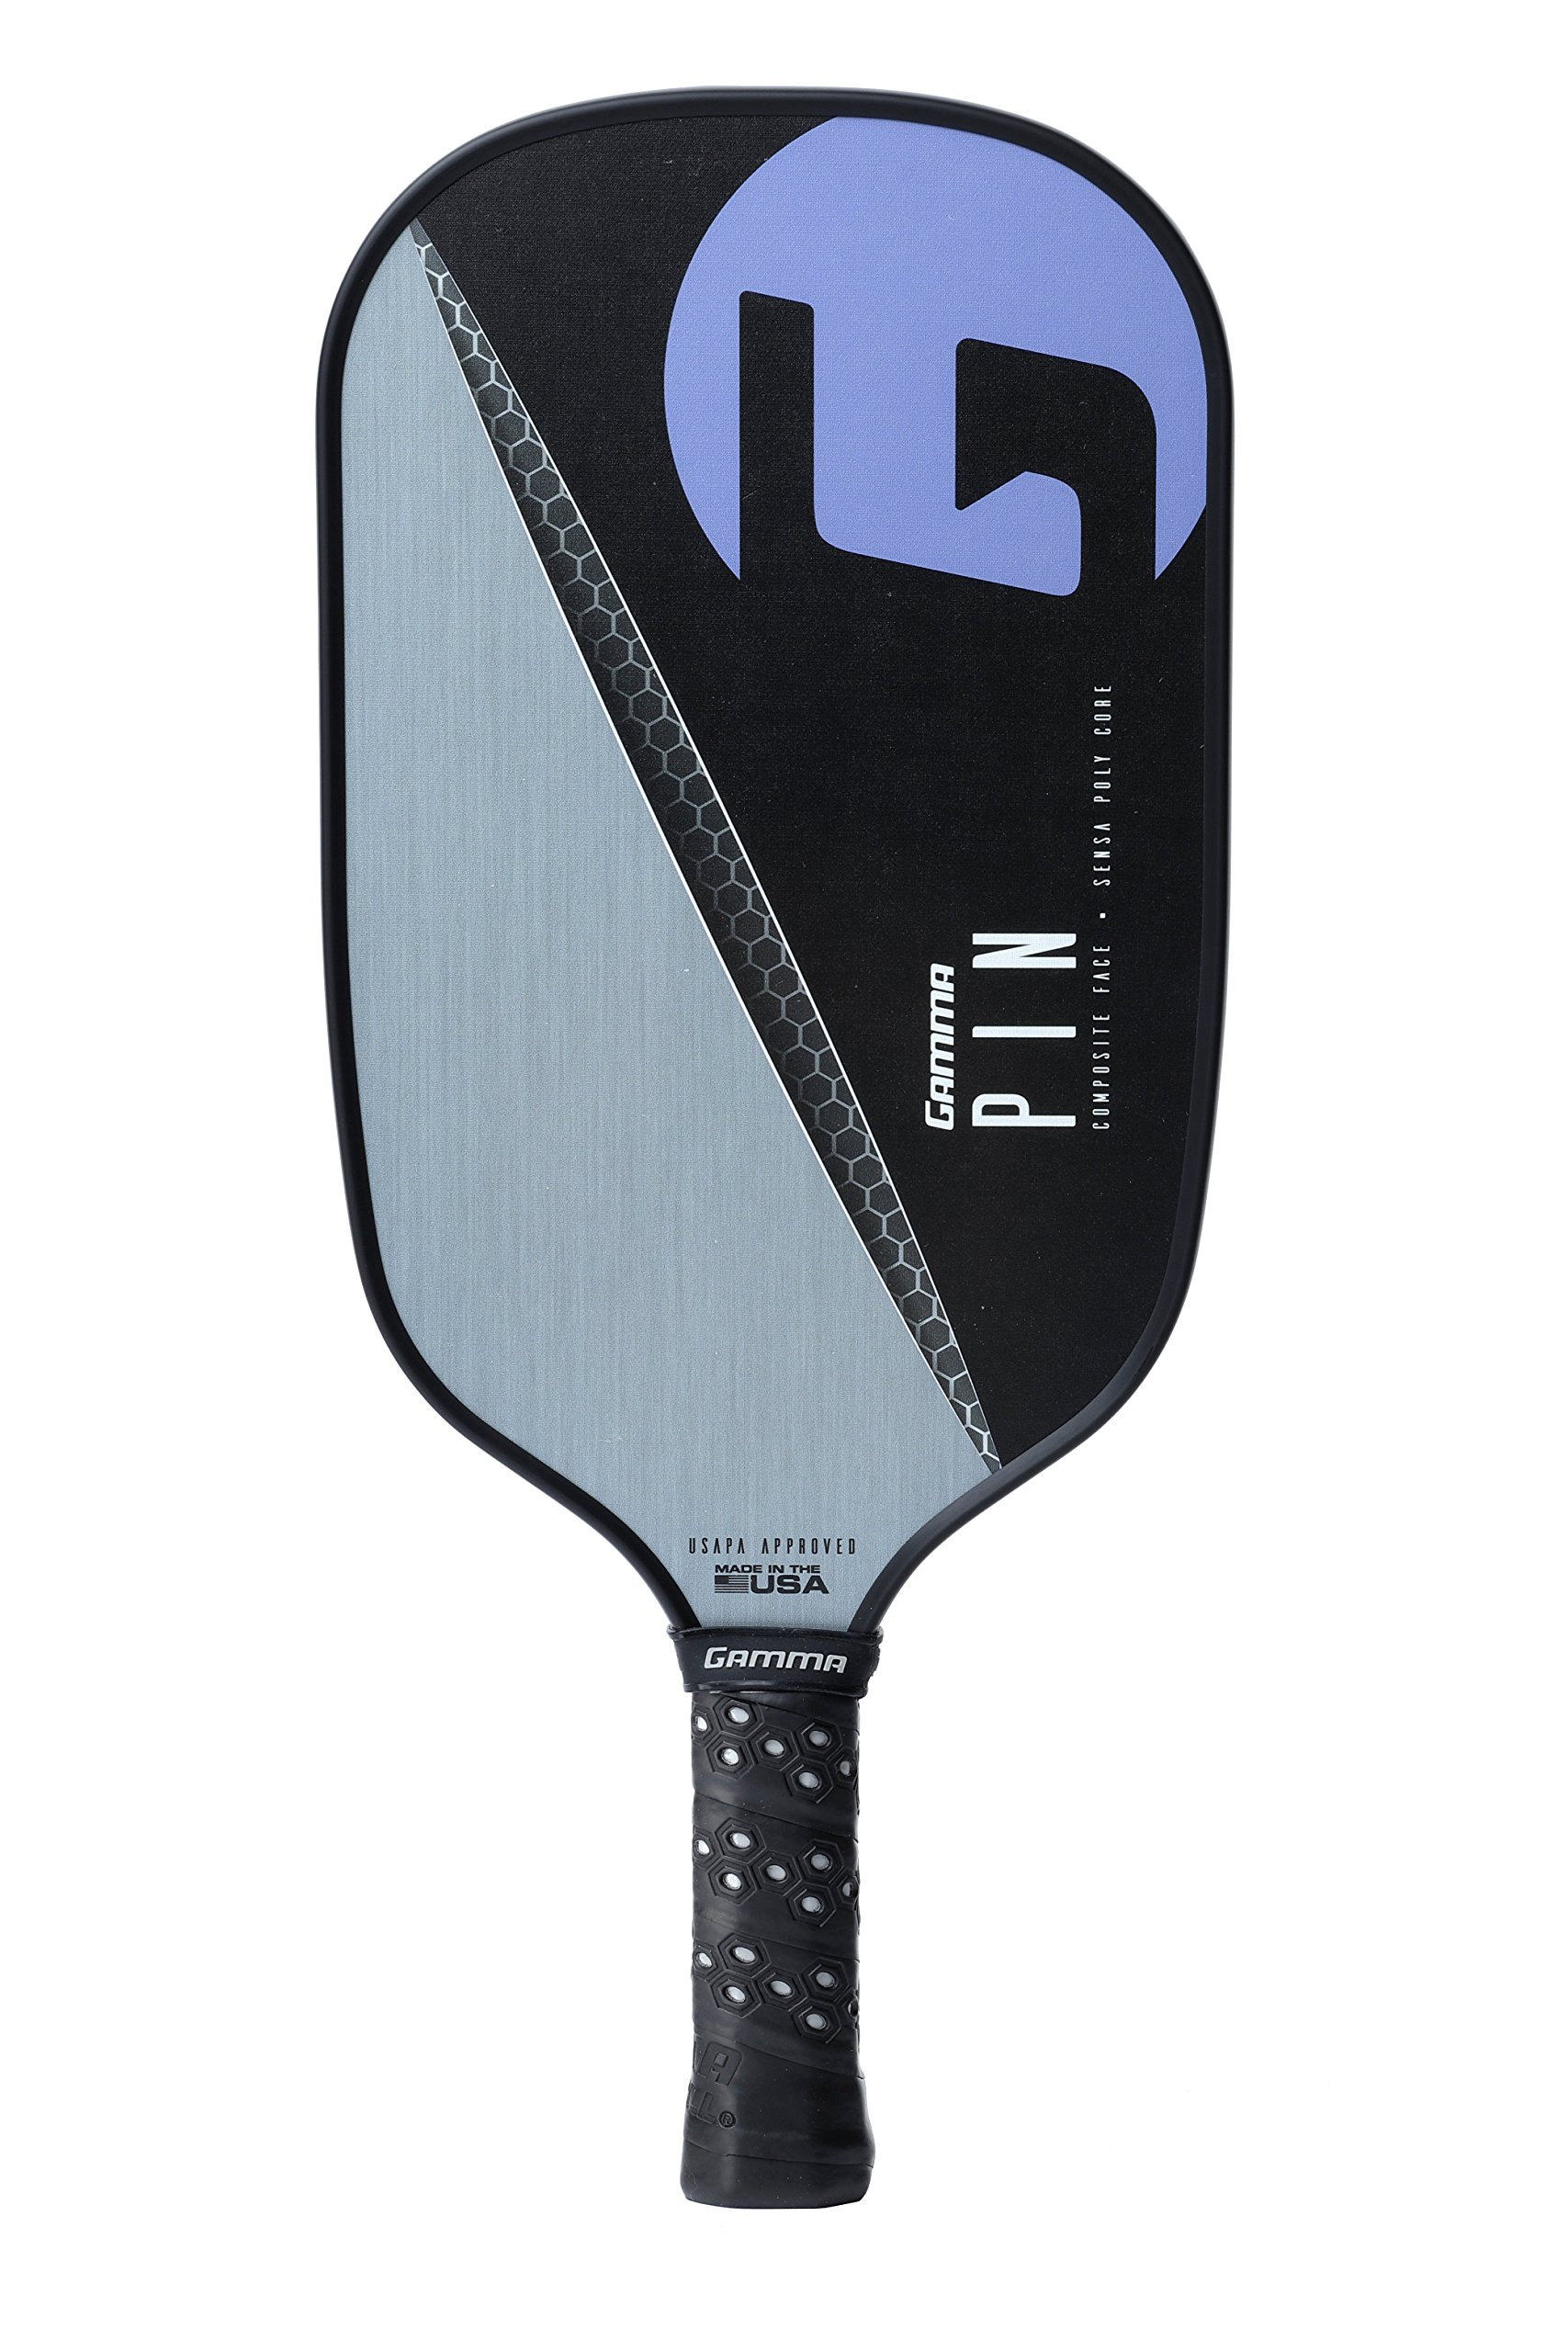 Gamma Pin Elongated Pickleball Paddle: Pickle Ball Paddles for Indoor & Outdoor Play - USAPA Approved Racquet for Adults & Kids - Pink/Blue by Gamma (Image #2)